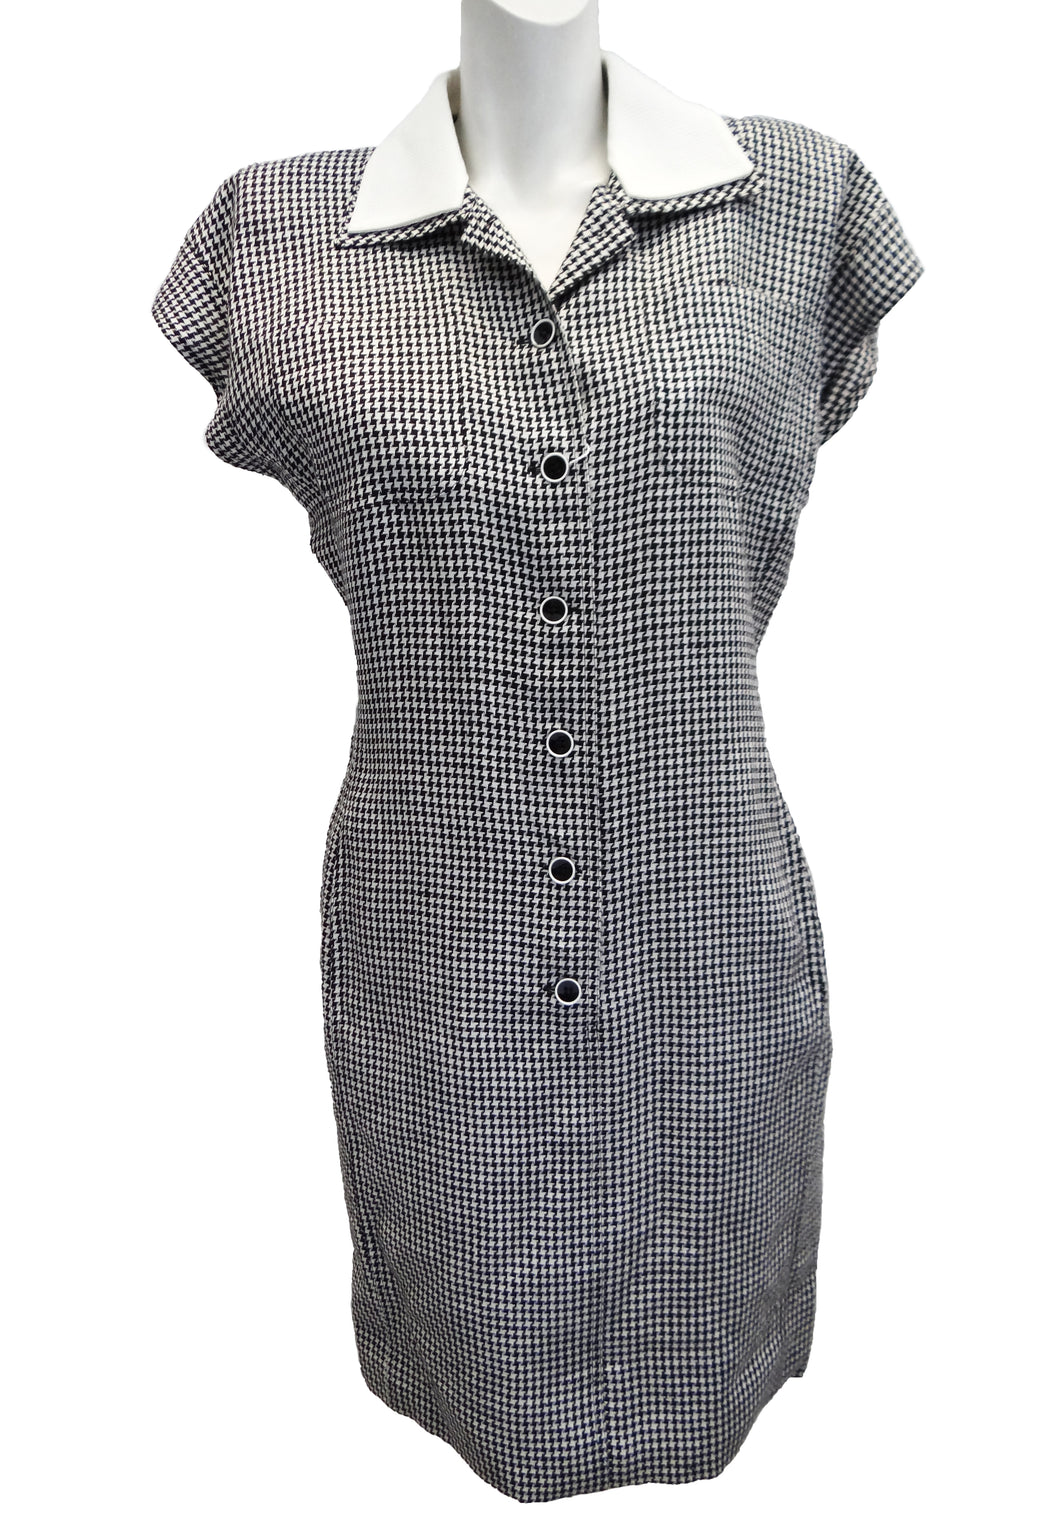 Ungaro Vintage Button-through Houndstooth Dress with Contrasting Collar, UK12